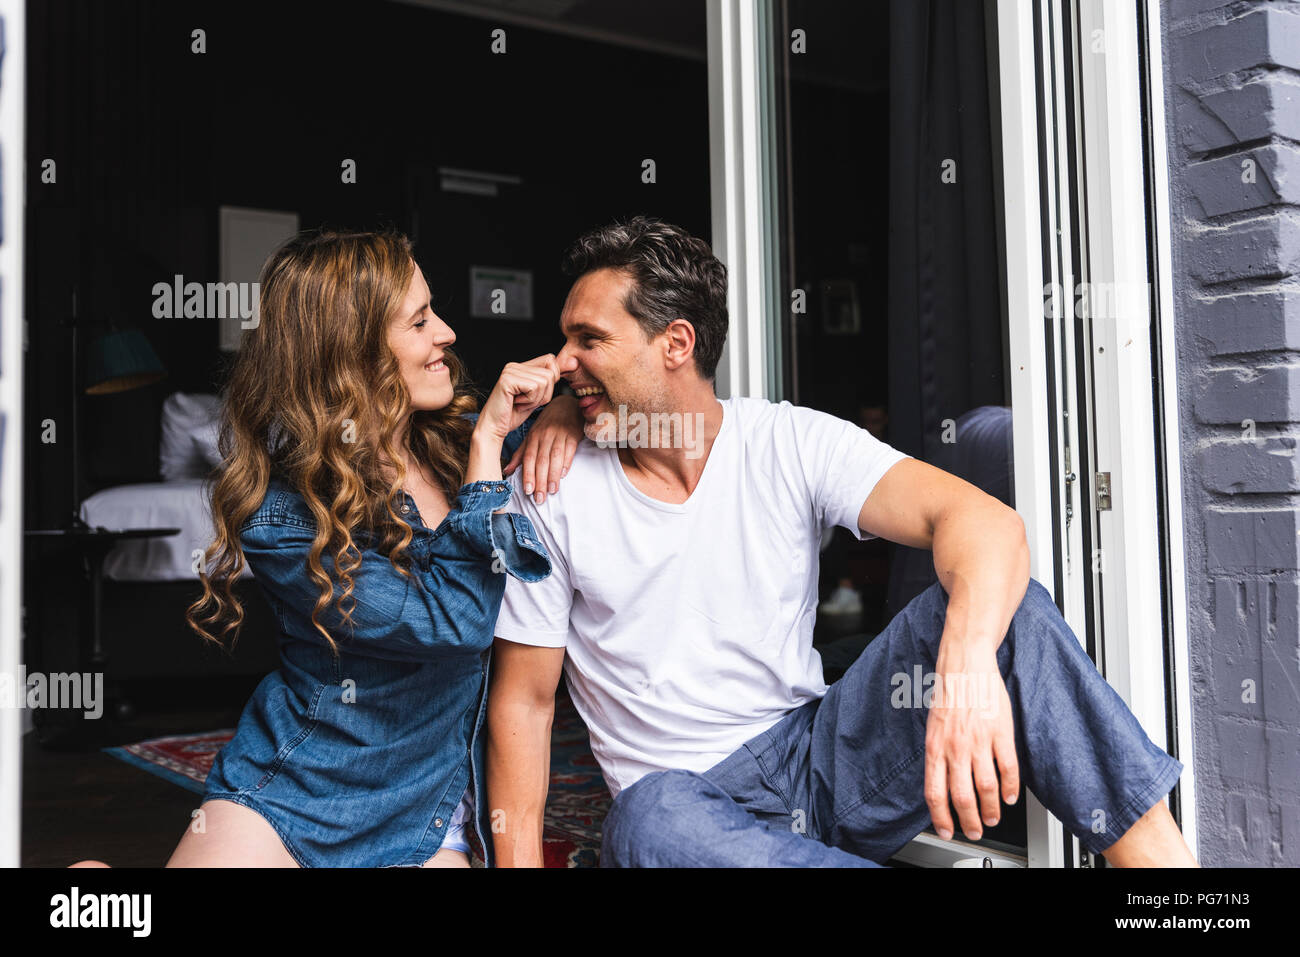 Playful couple in nightwear at home sitting at French window - Stock Image